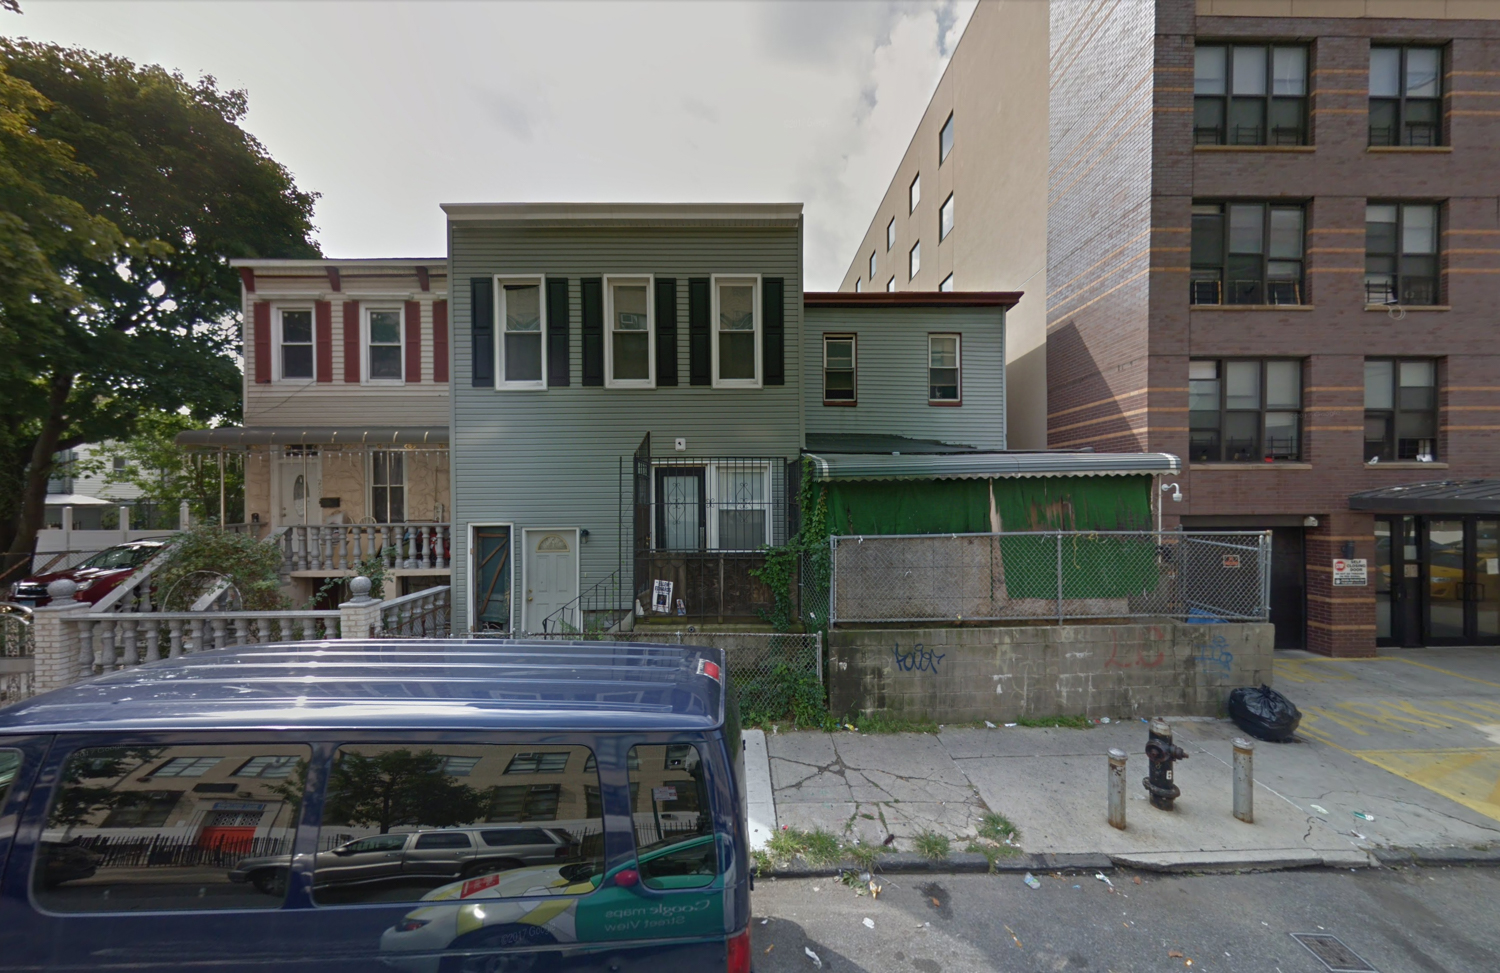 2524 Albemarle Road, via Google Maps